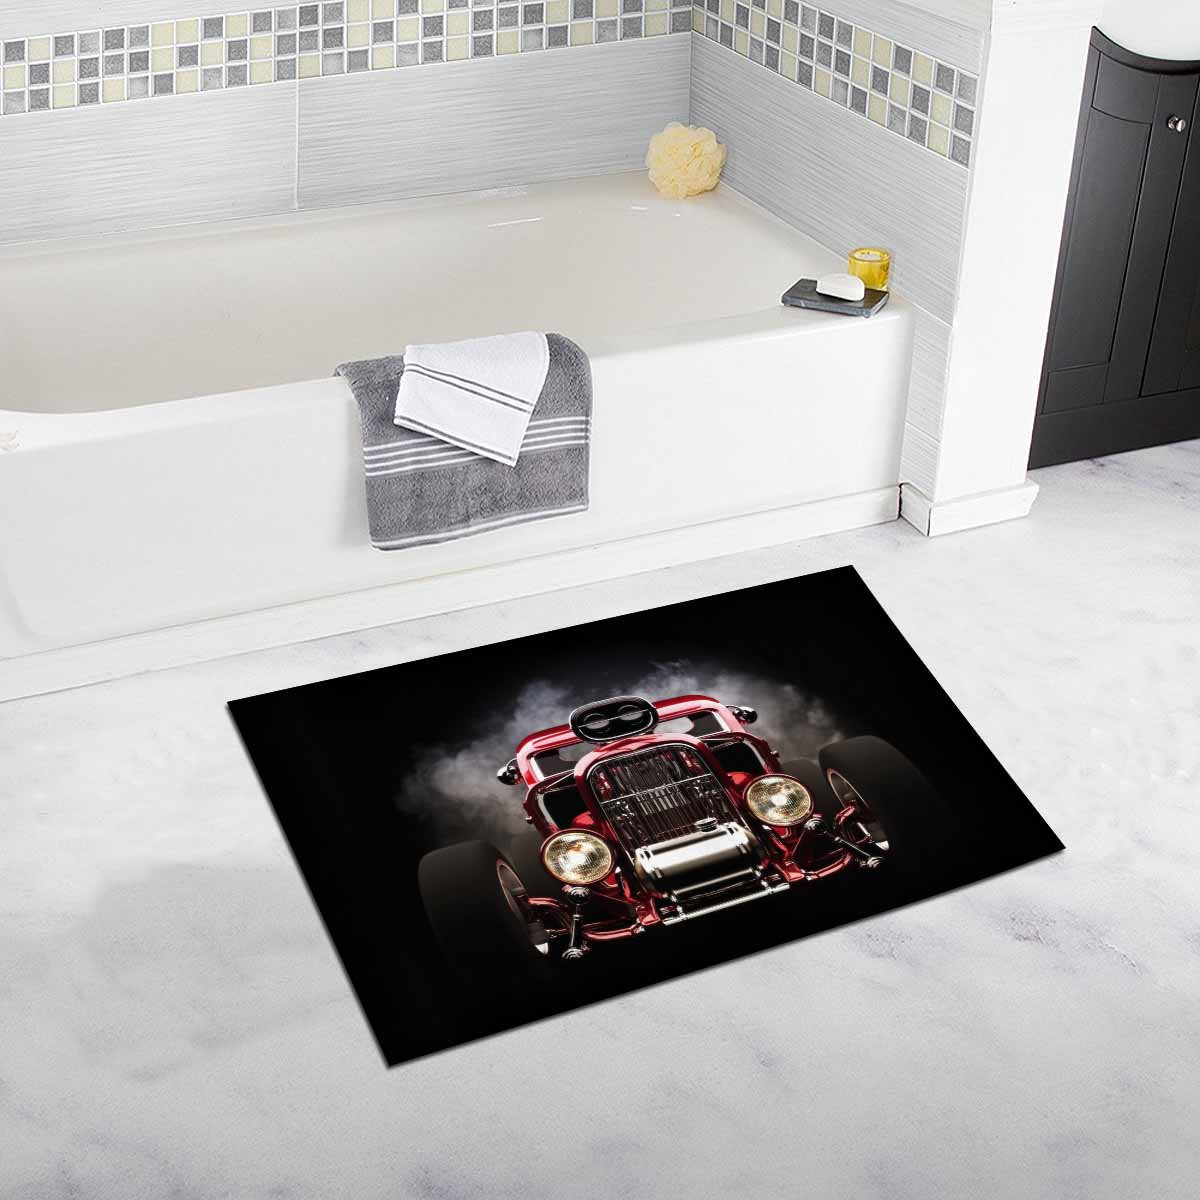 InterestPrint Hot Rod with Smoke Photo Art Bath Mat Soft Bathroom Rugs Non-slip Rubber 20W X 32L Inches high-quality